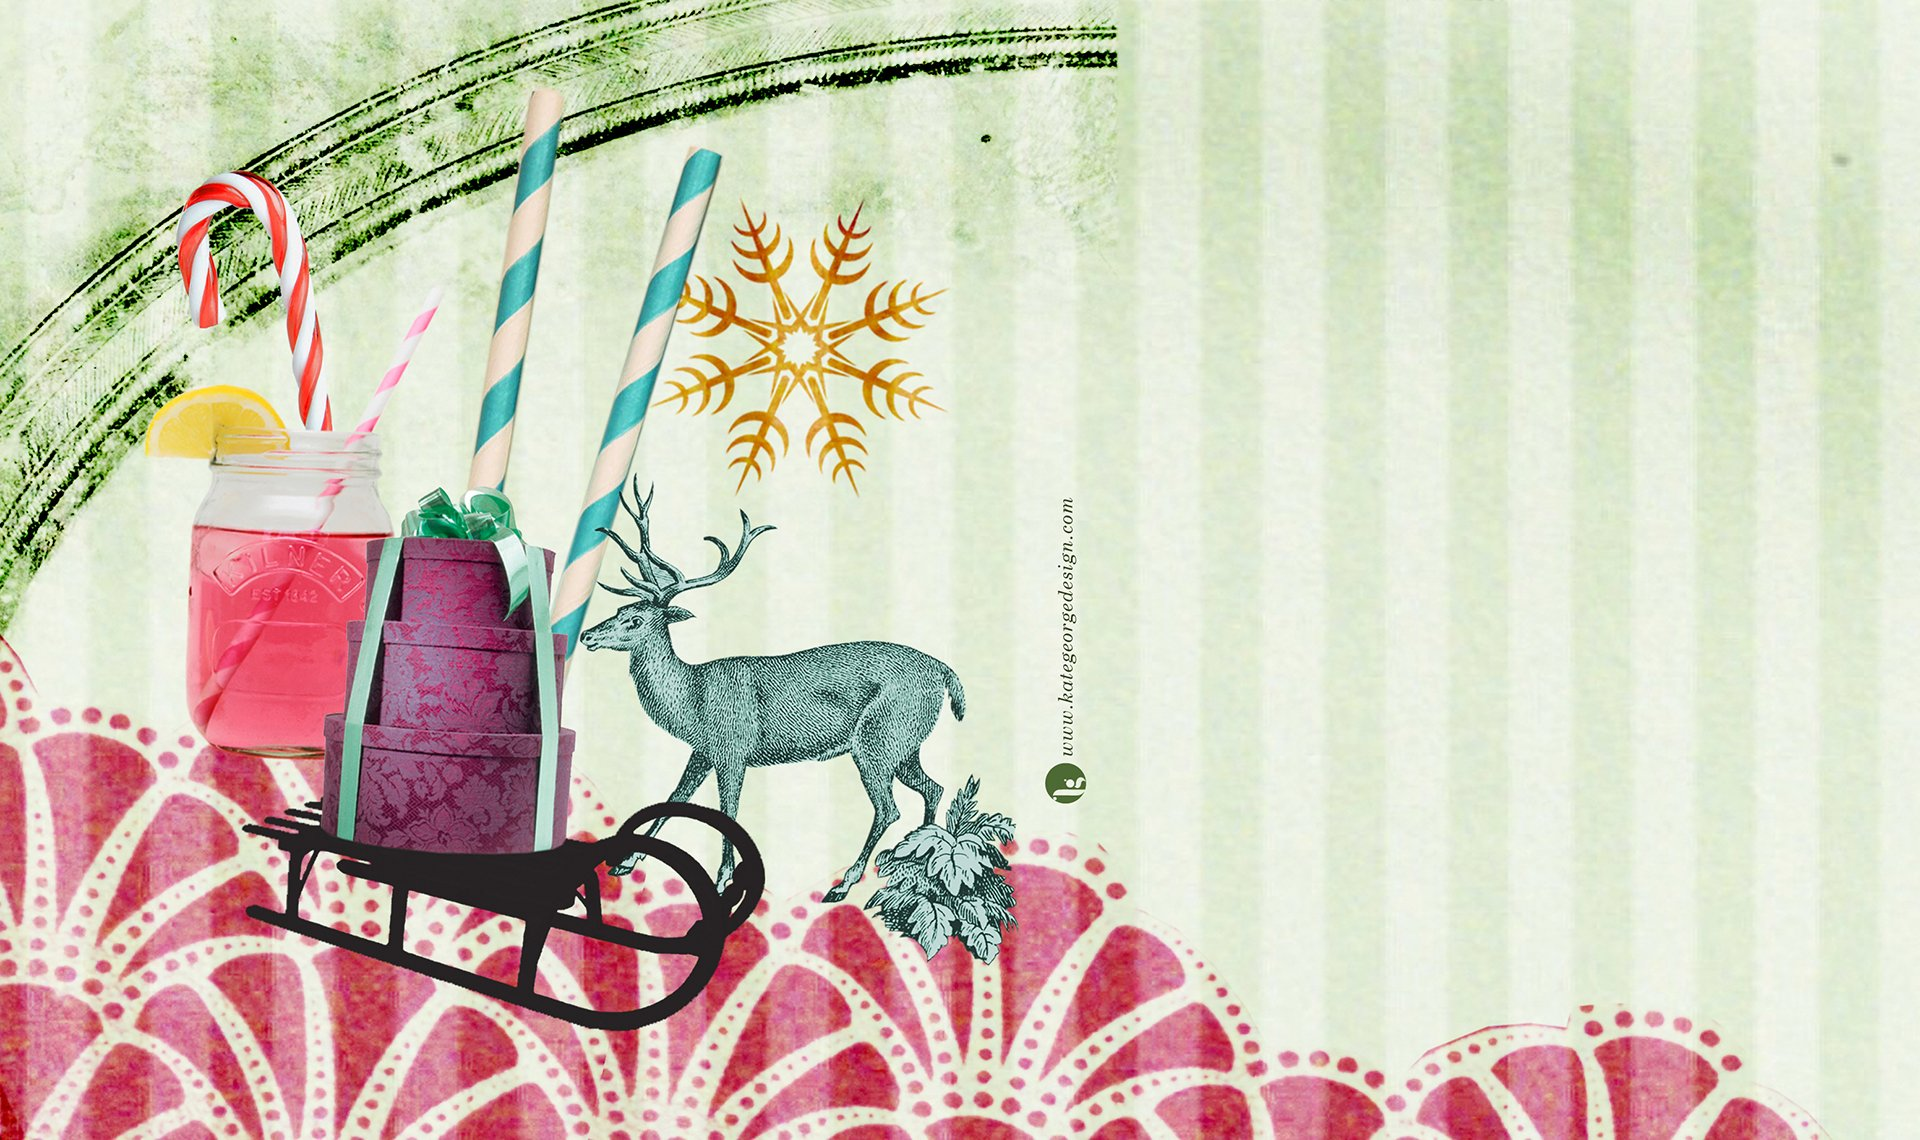 Montpeliers Christmas promotional artwork featuring stags, candy striped straws, sledges, gifts and drinks